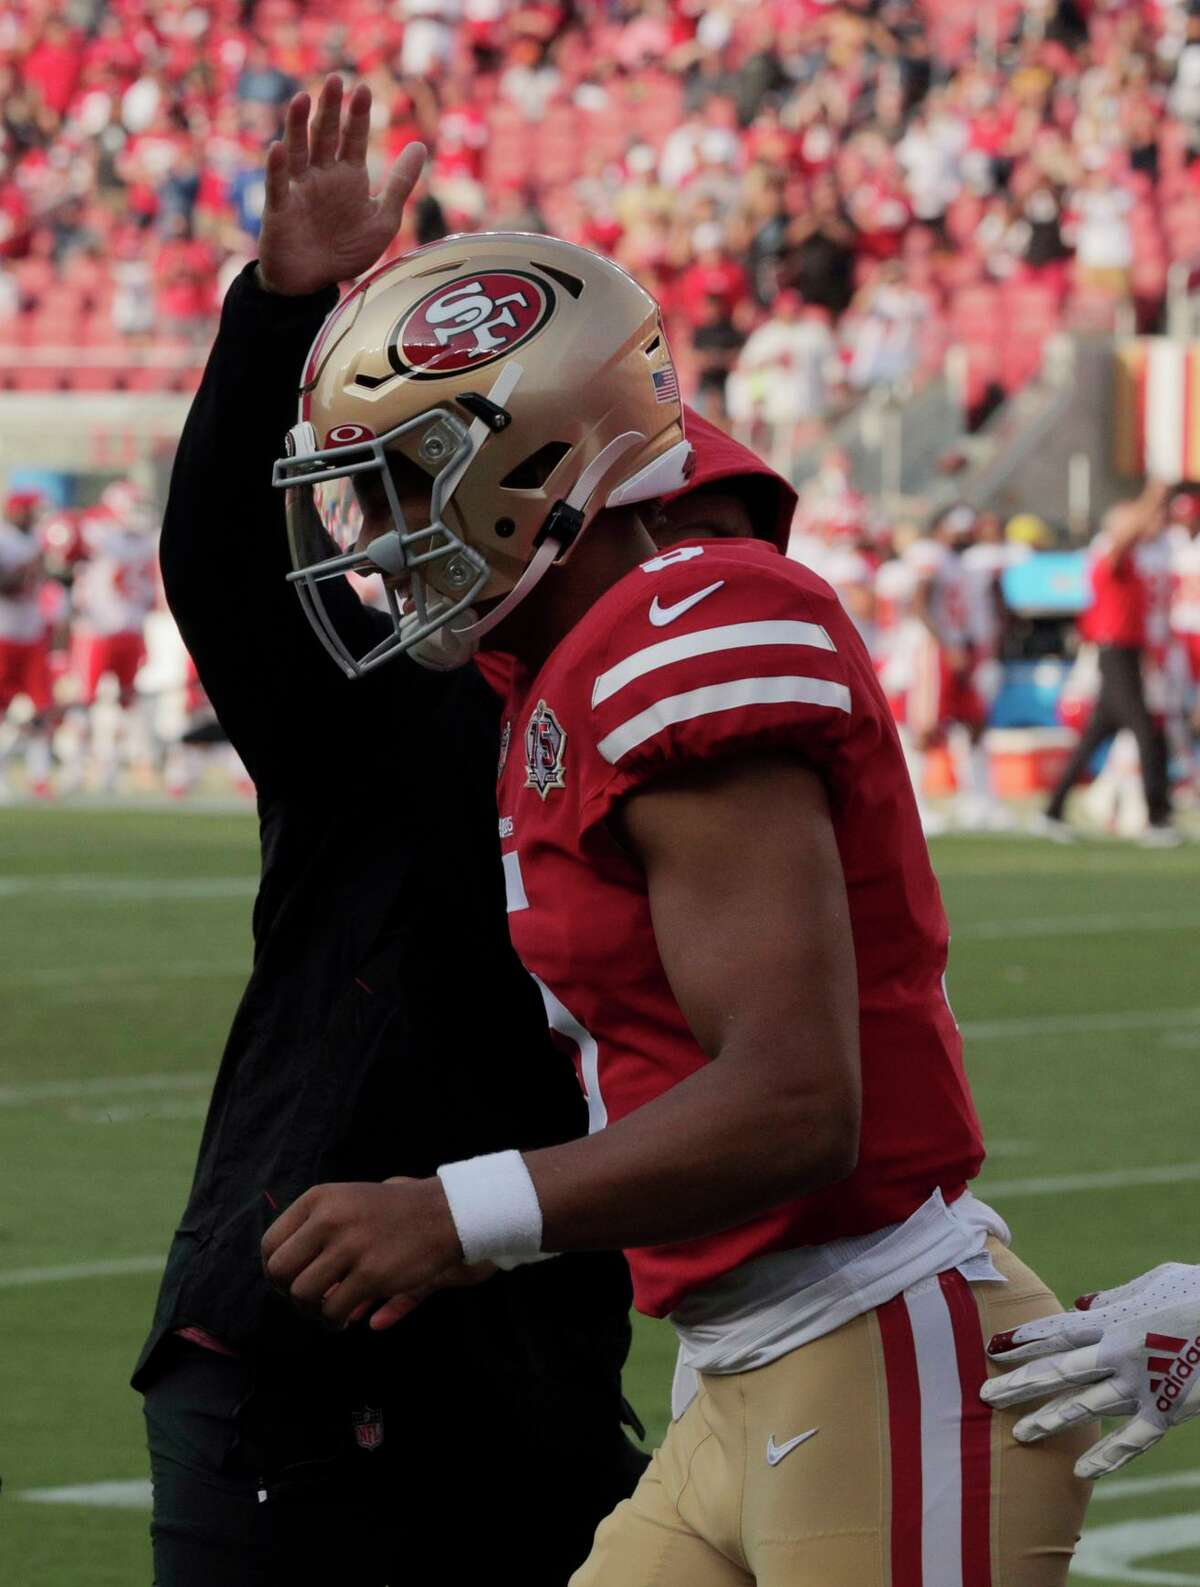 Trey Lance (5) congratulated by teammates after his touchdown pass to Trent Sherfield in the first half as the San Francisco 49ers played the Kansas City Chiefs at Levi's Stadium in Santa Clara, Calif., on Saturday, August 14, 2021.